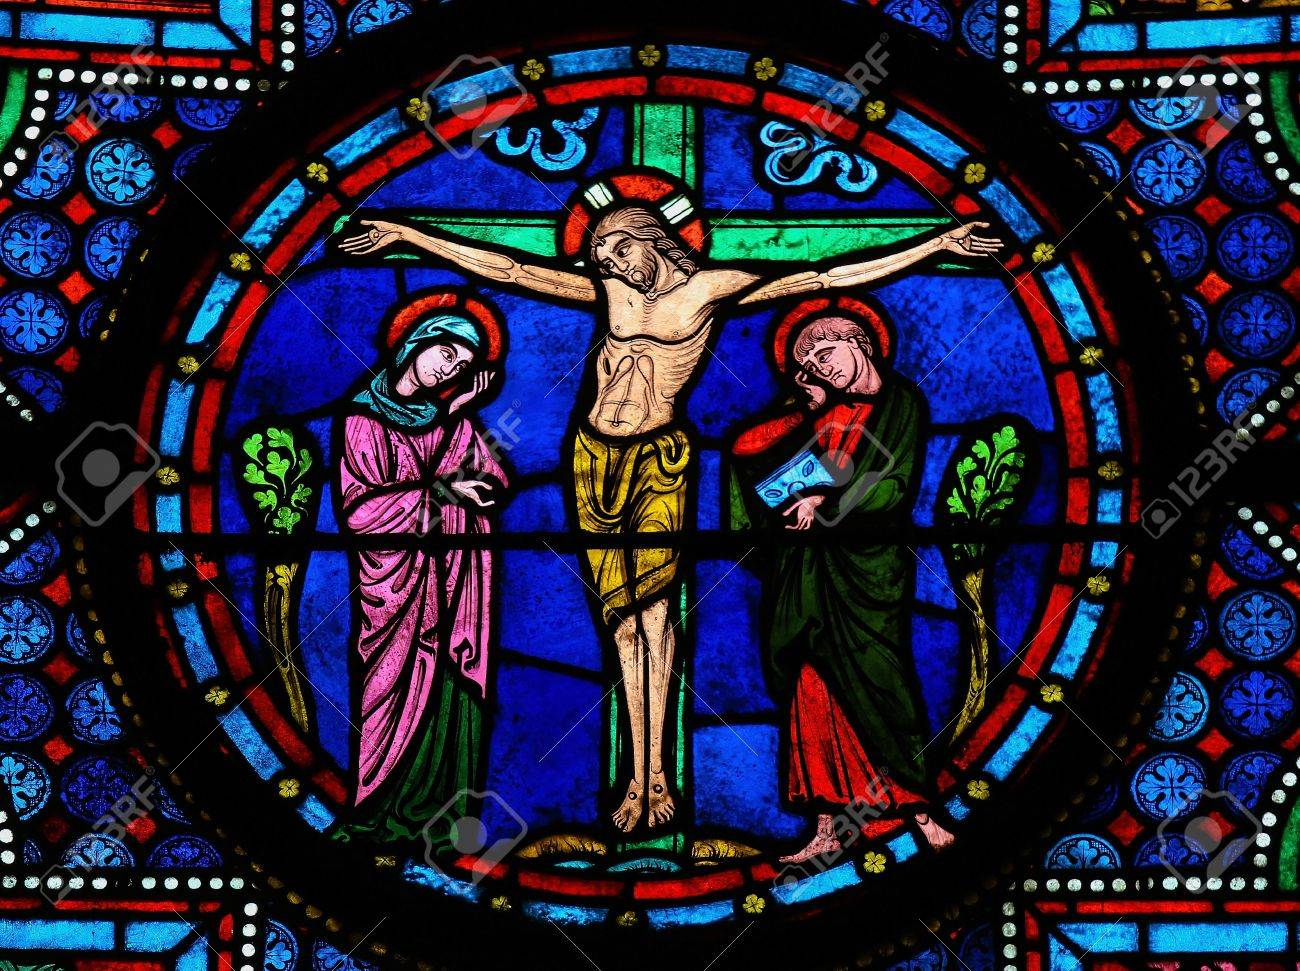 Stained glass window depicting Jesus on the Cross in the cathedral of Bayeux, Normandy, France. This window was created in the 15th century, no property release is required. - 17950849